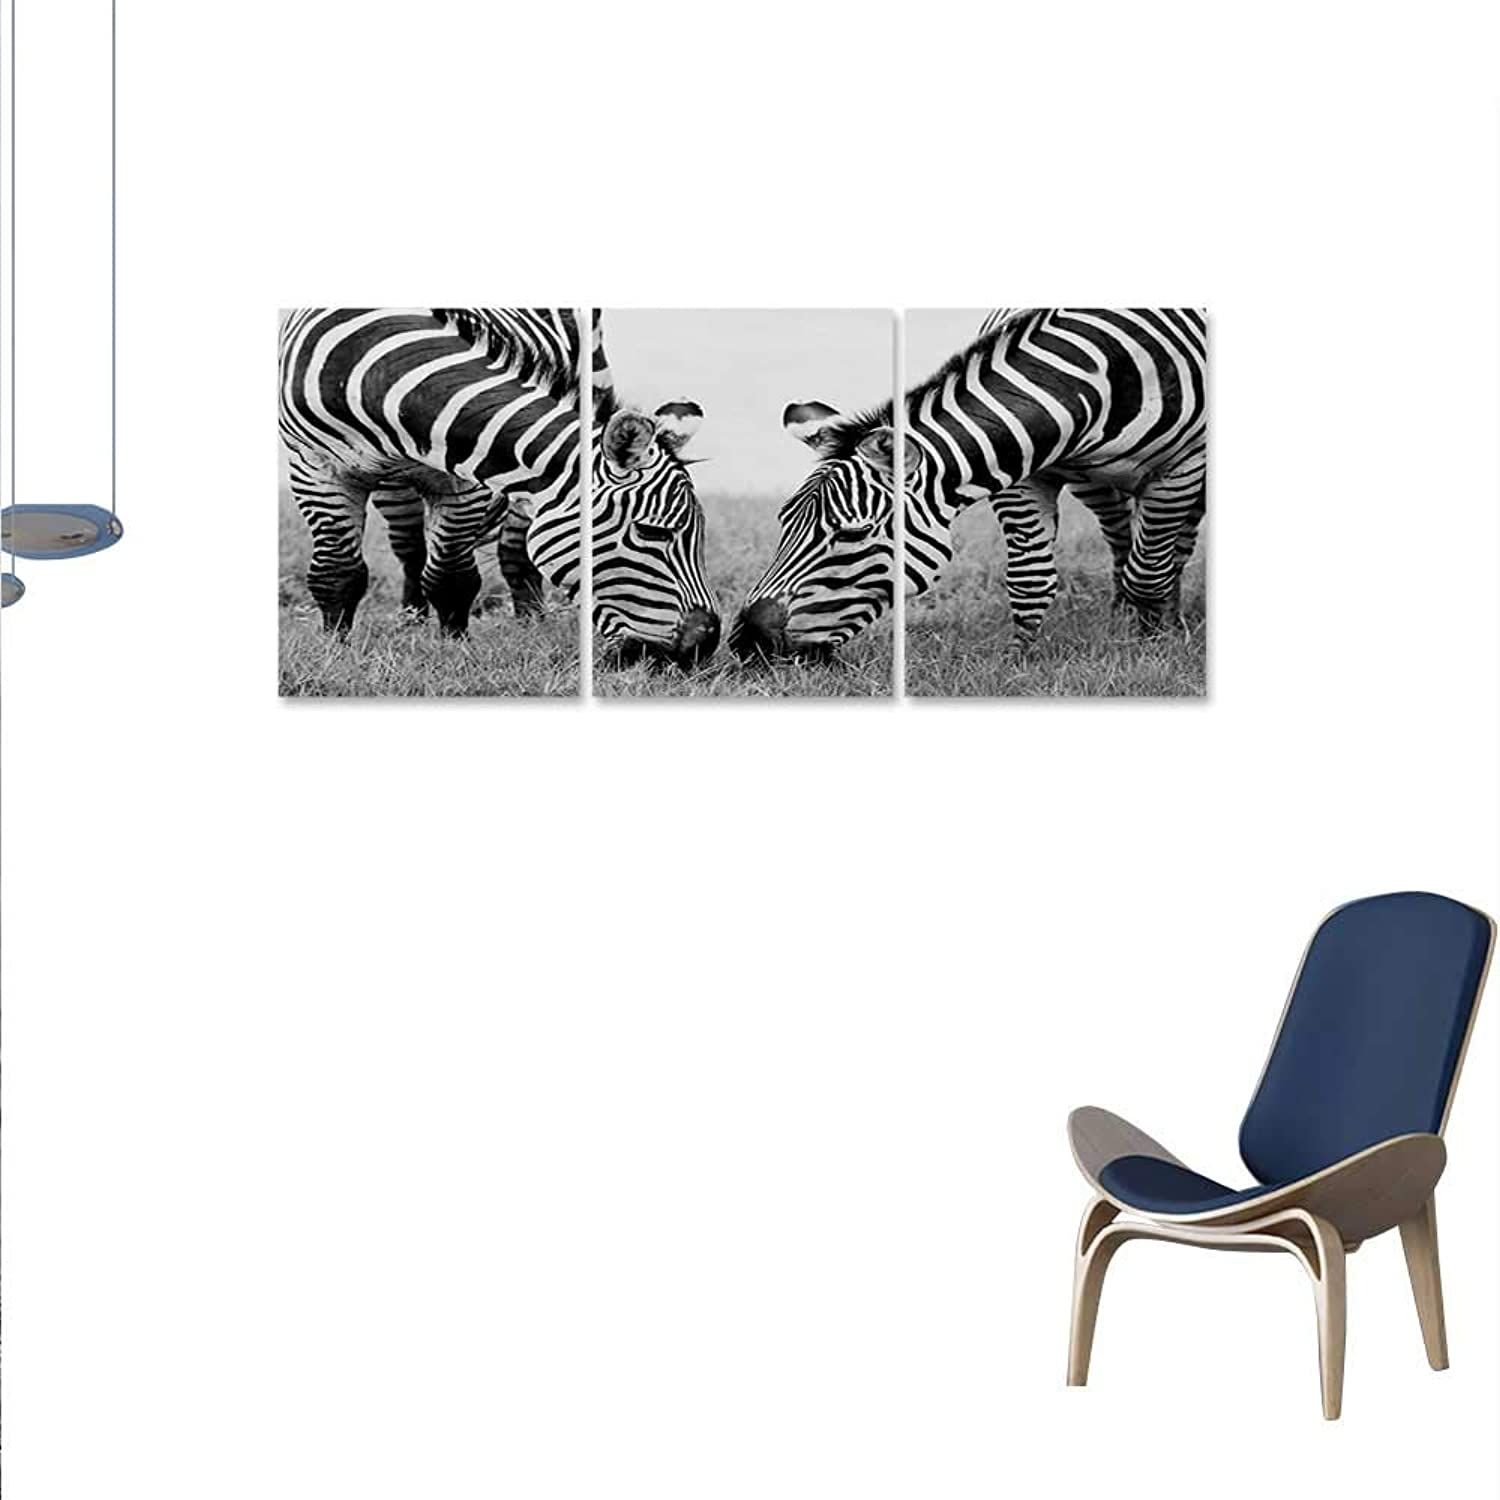 Animal 3 Piece Canvas Wall Art Zebras African Wildlife Burchell Safari Theme National Park Monochrome Picture Print Paintings Home Wall Office Decor 16 x24 x3pcs Black White